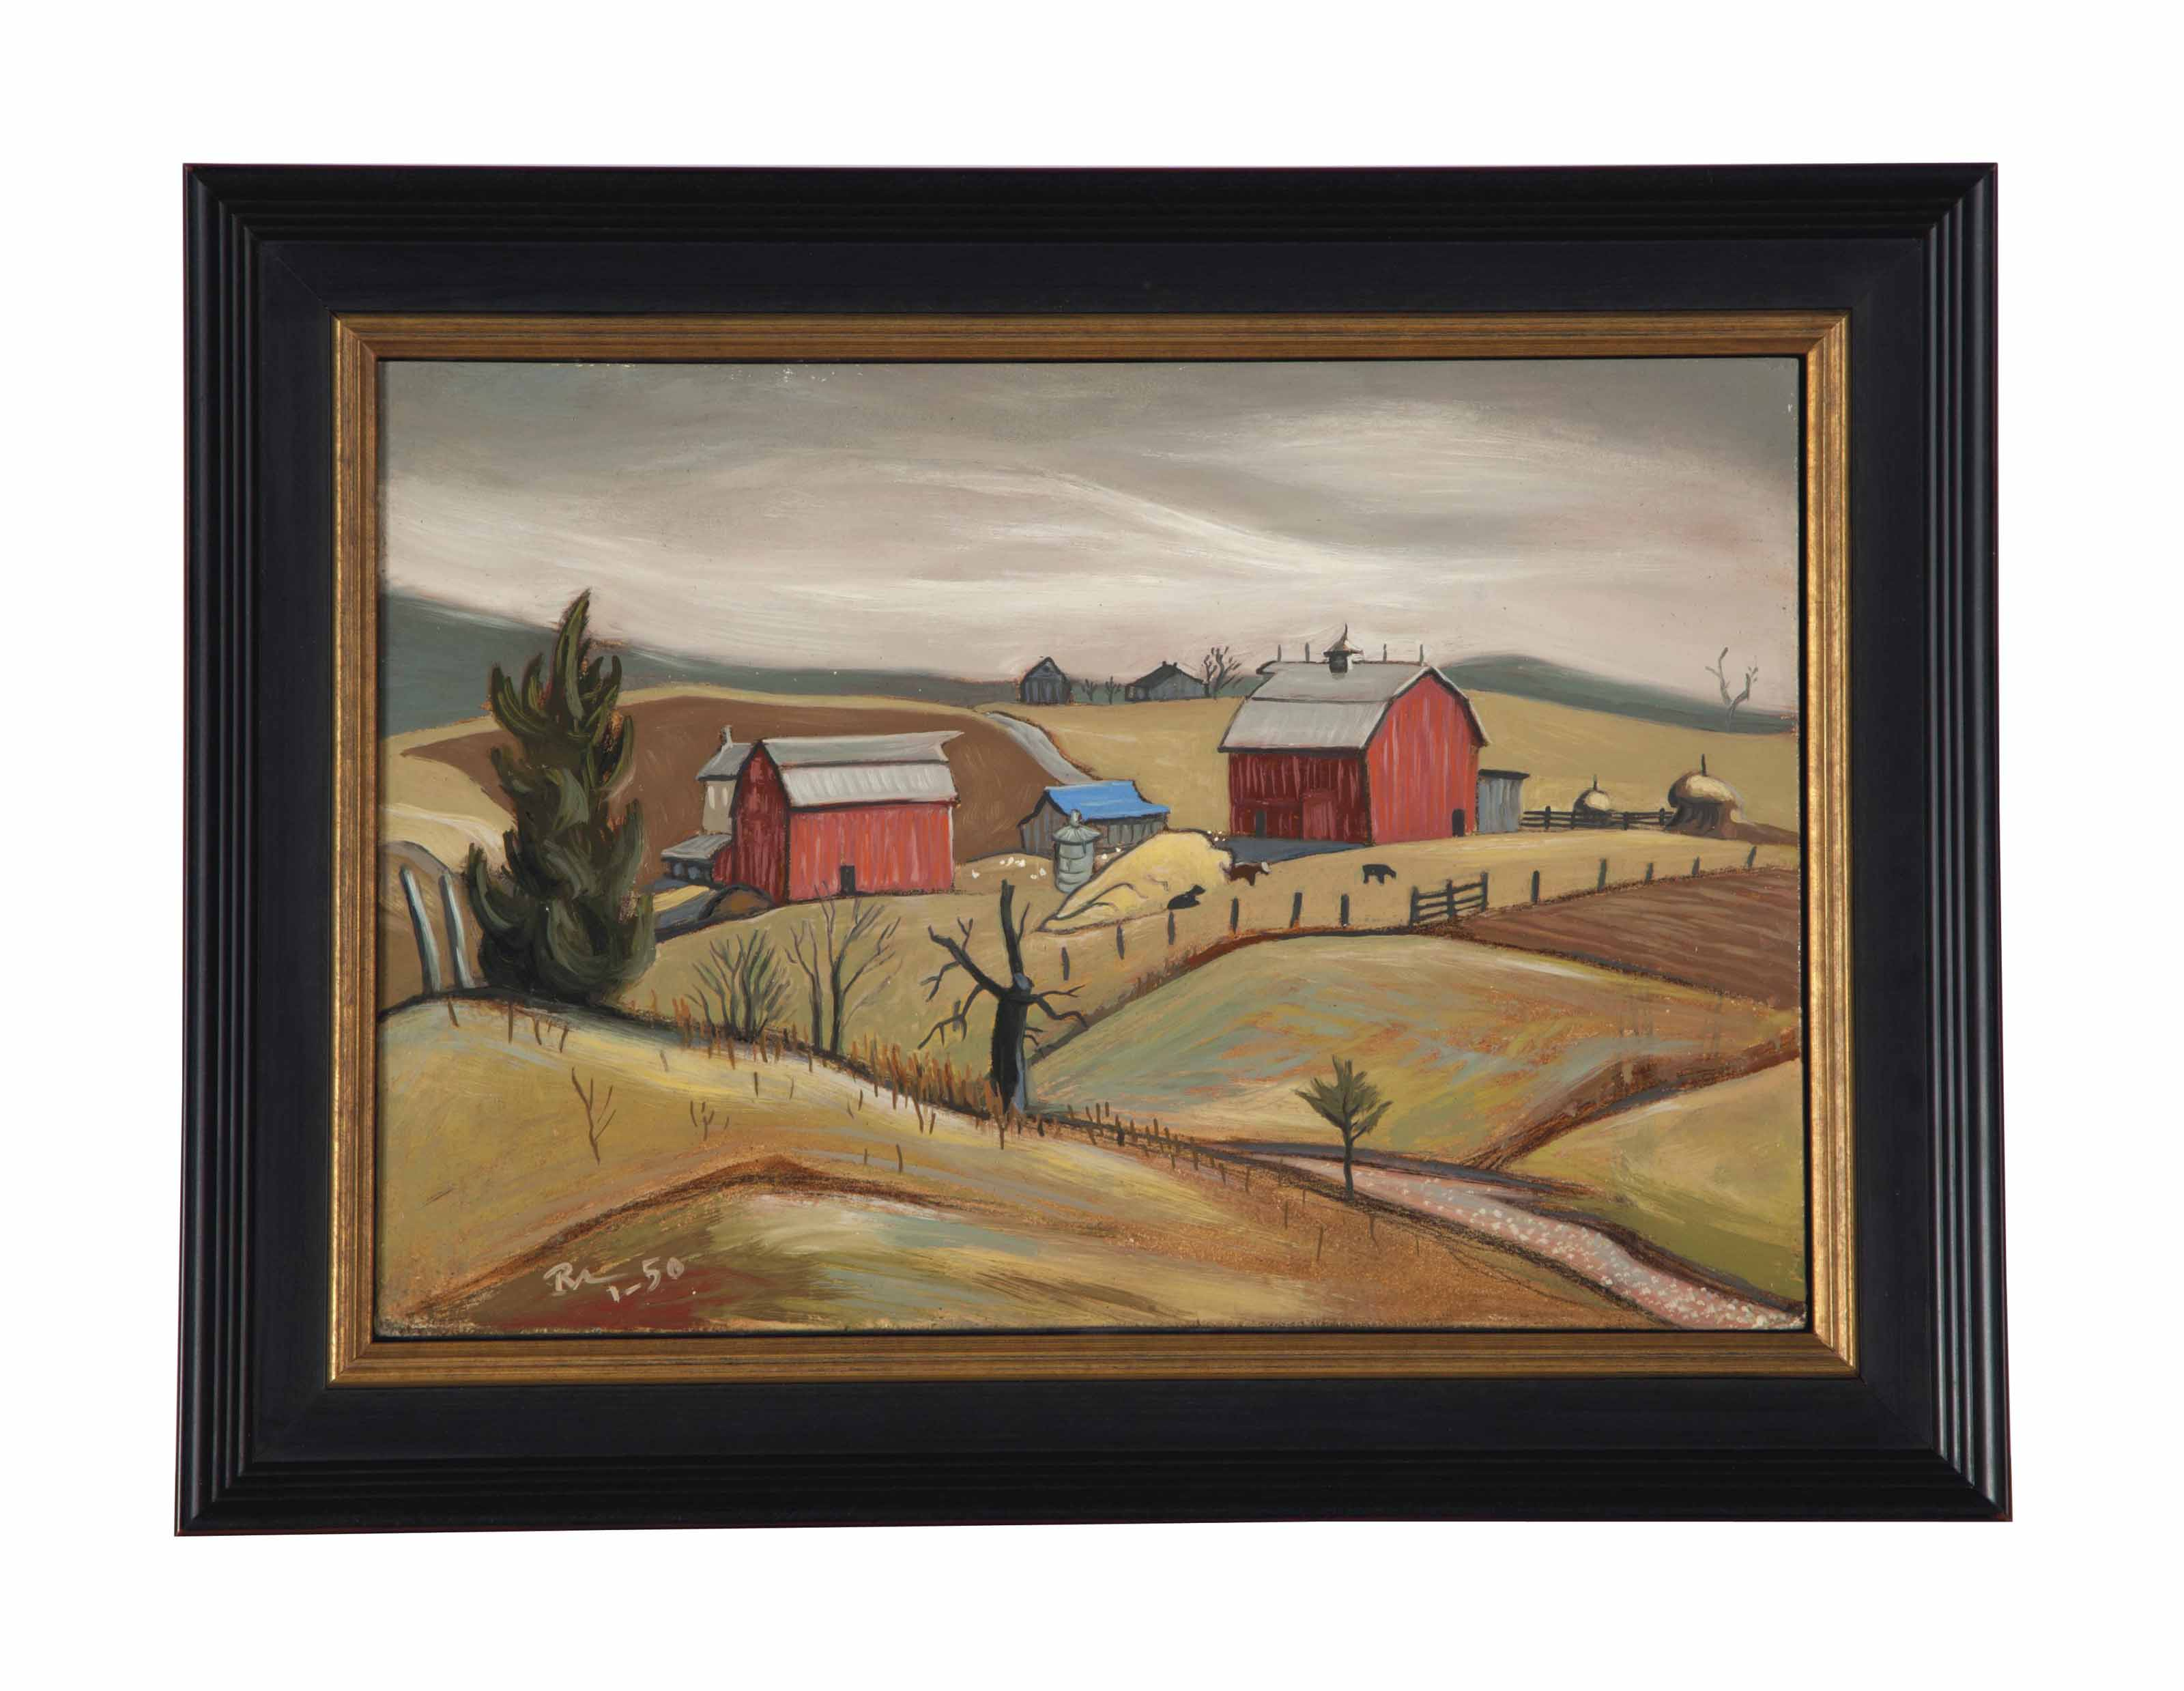 Sketch for the painting Missouri Farm